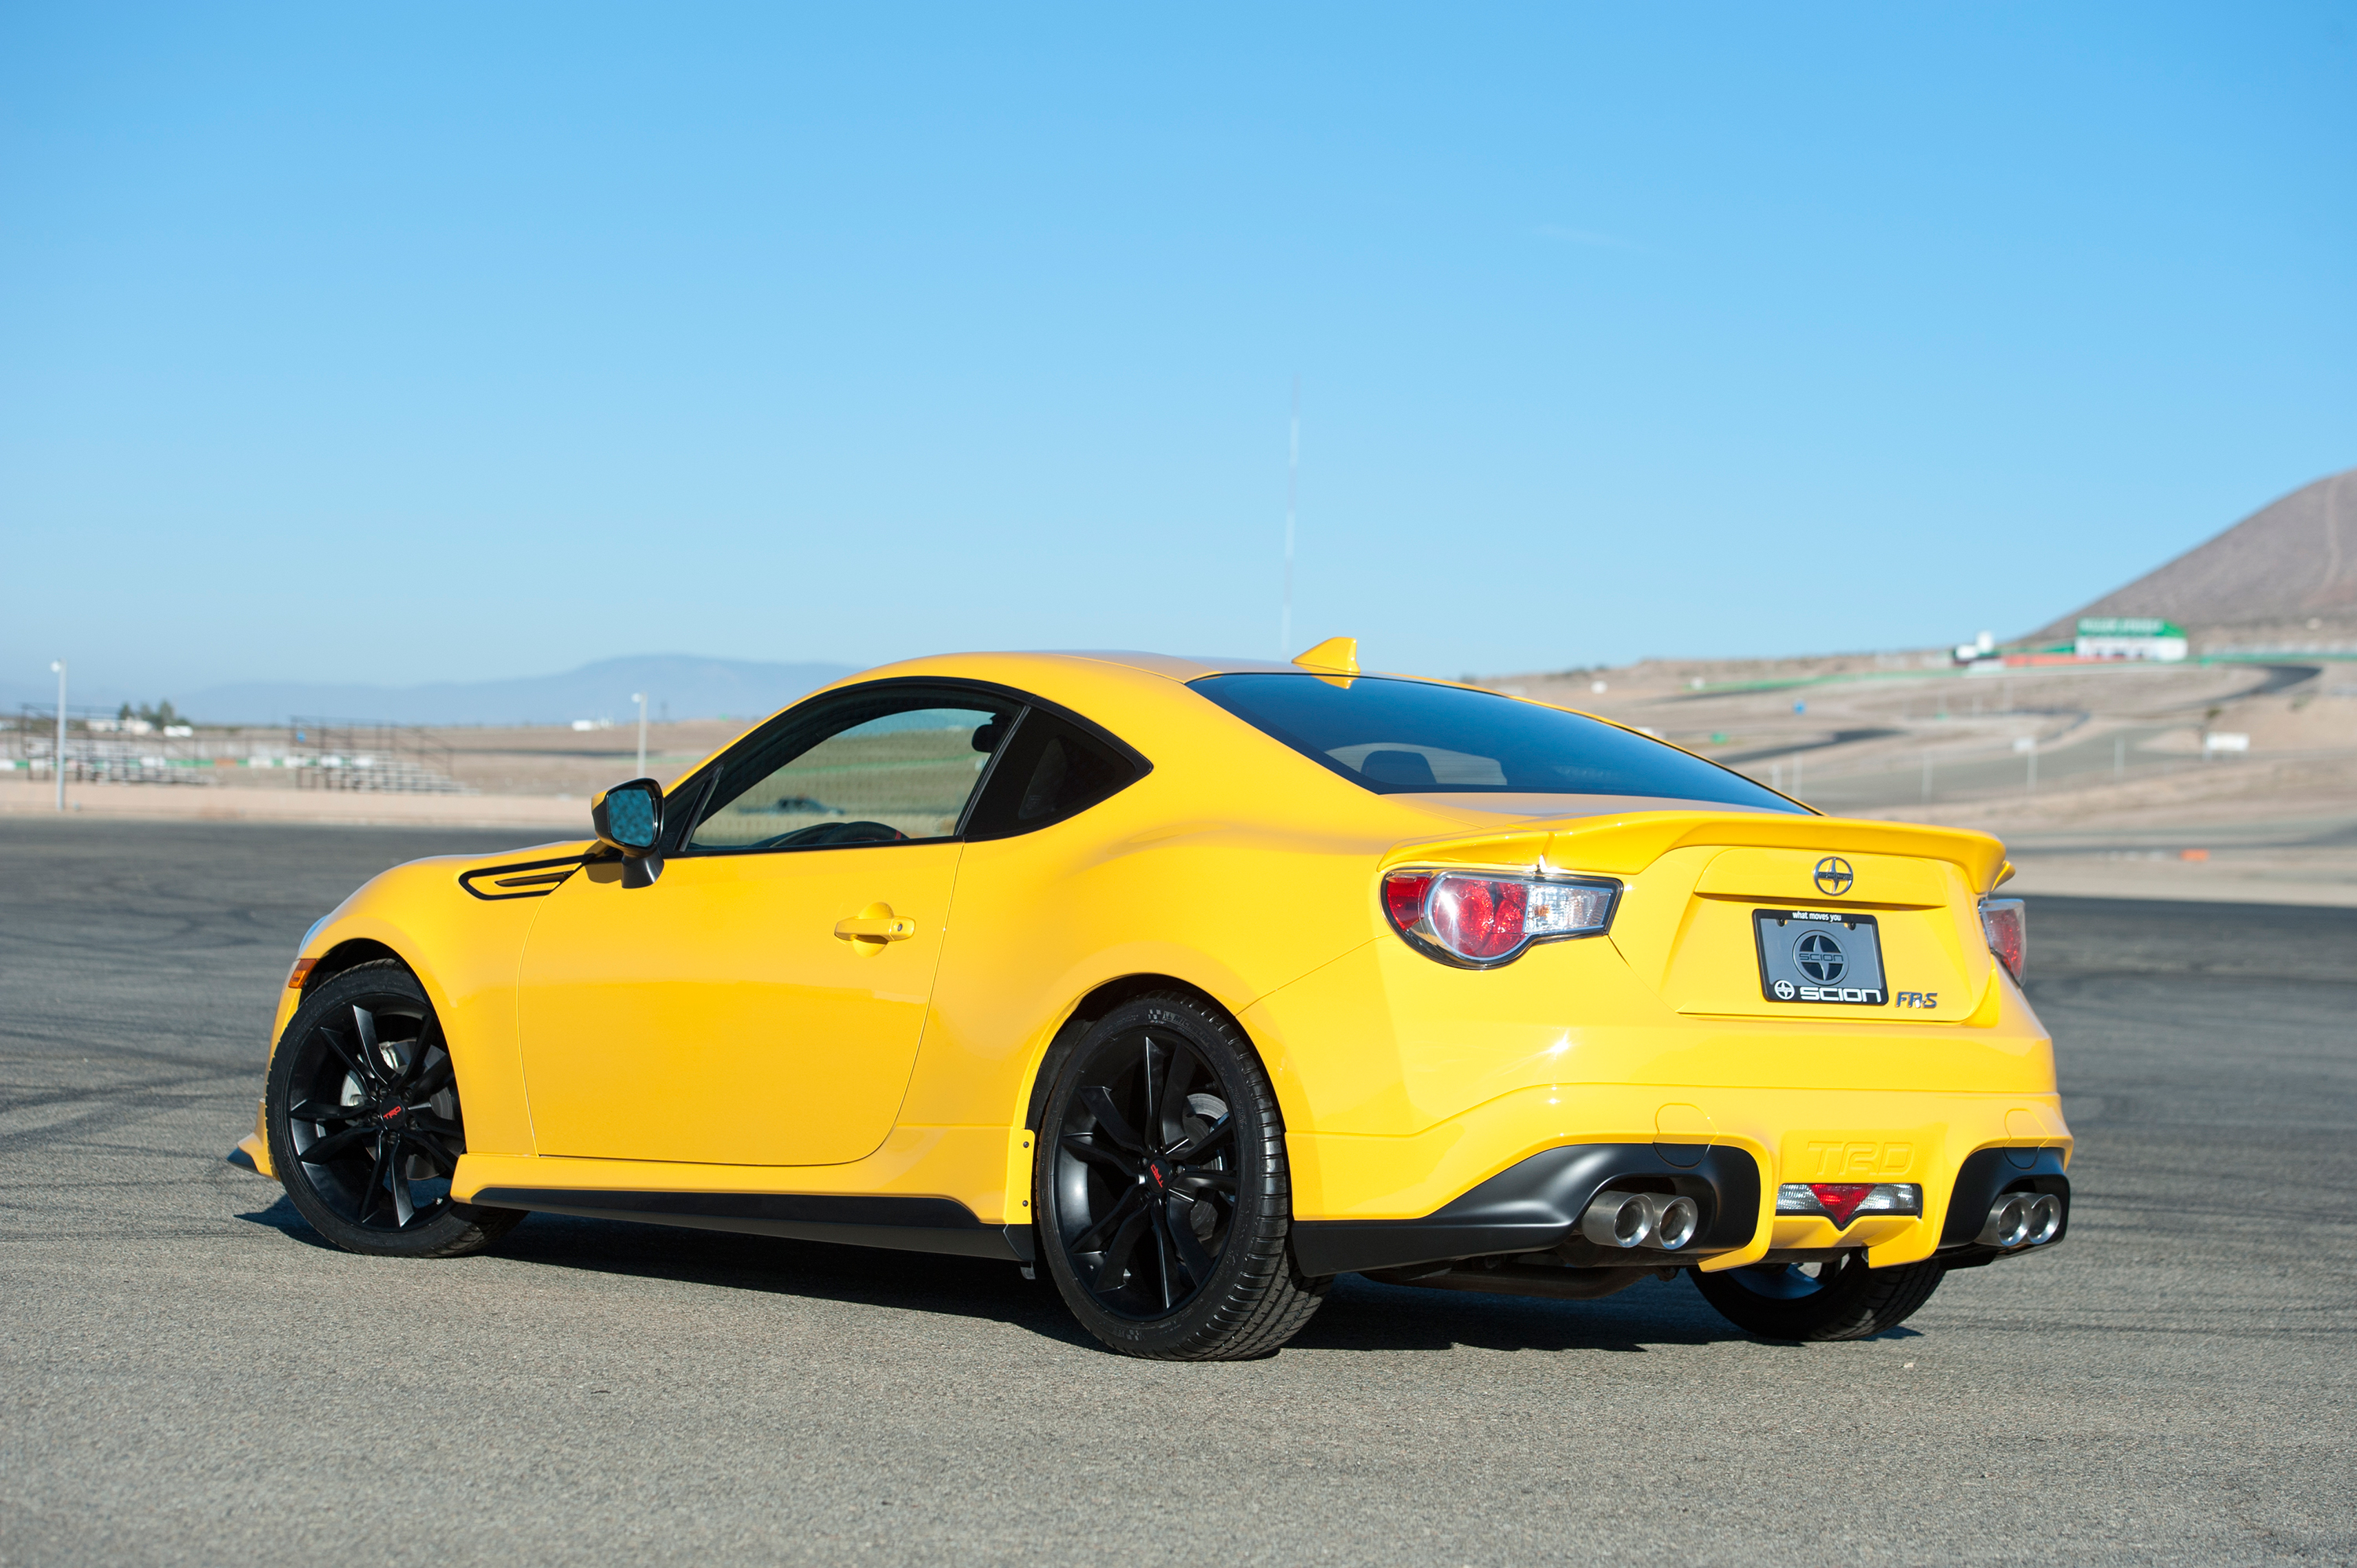 X more rumors of the next generation toyota gt86